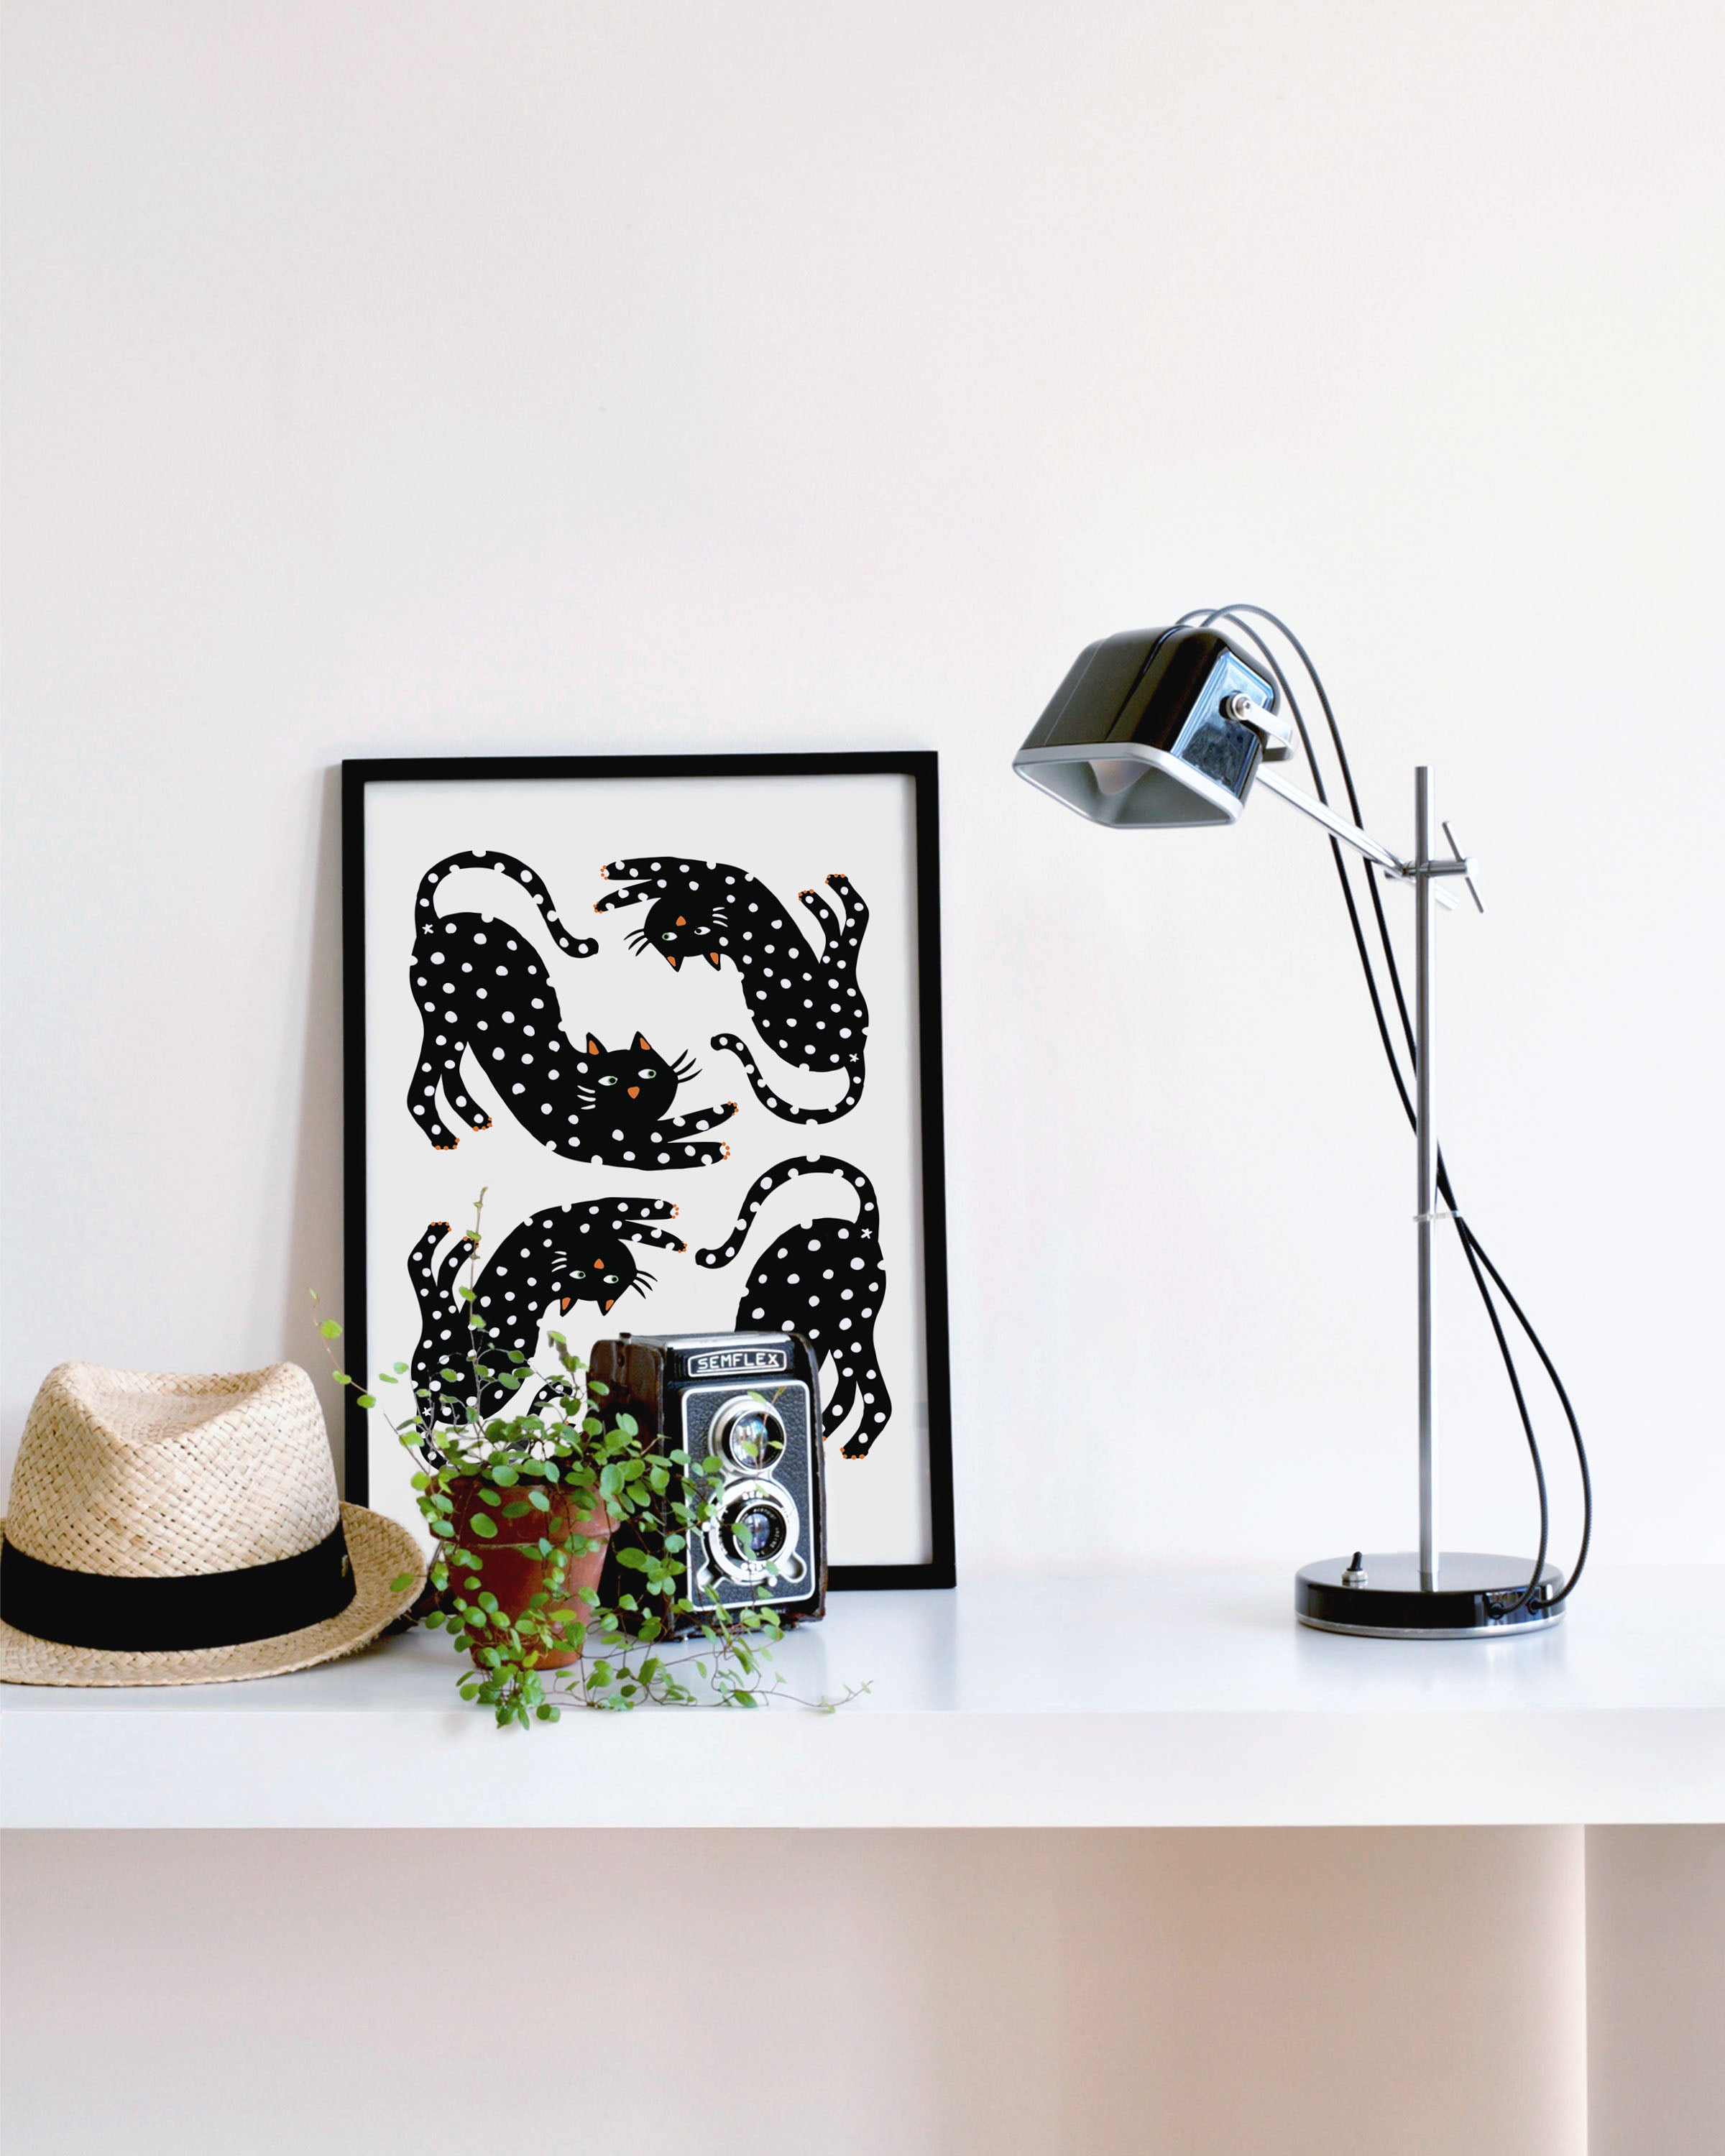 Playful Black Cat Art Print in a black frame surrounded by a plant, hat and desk lamp